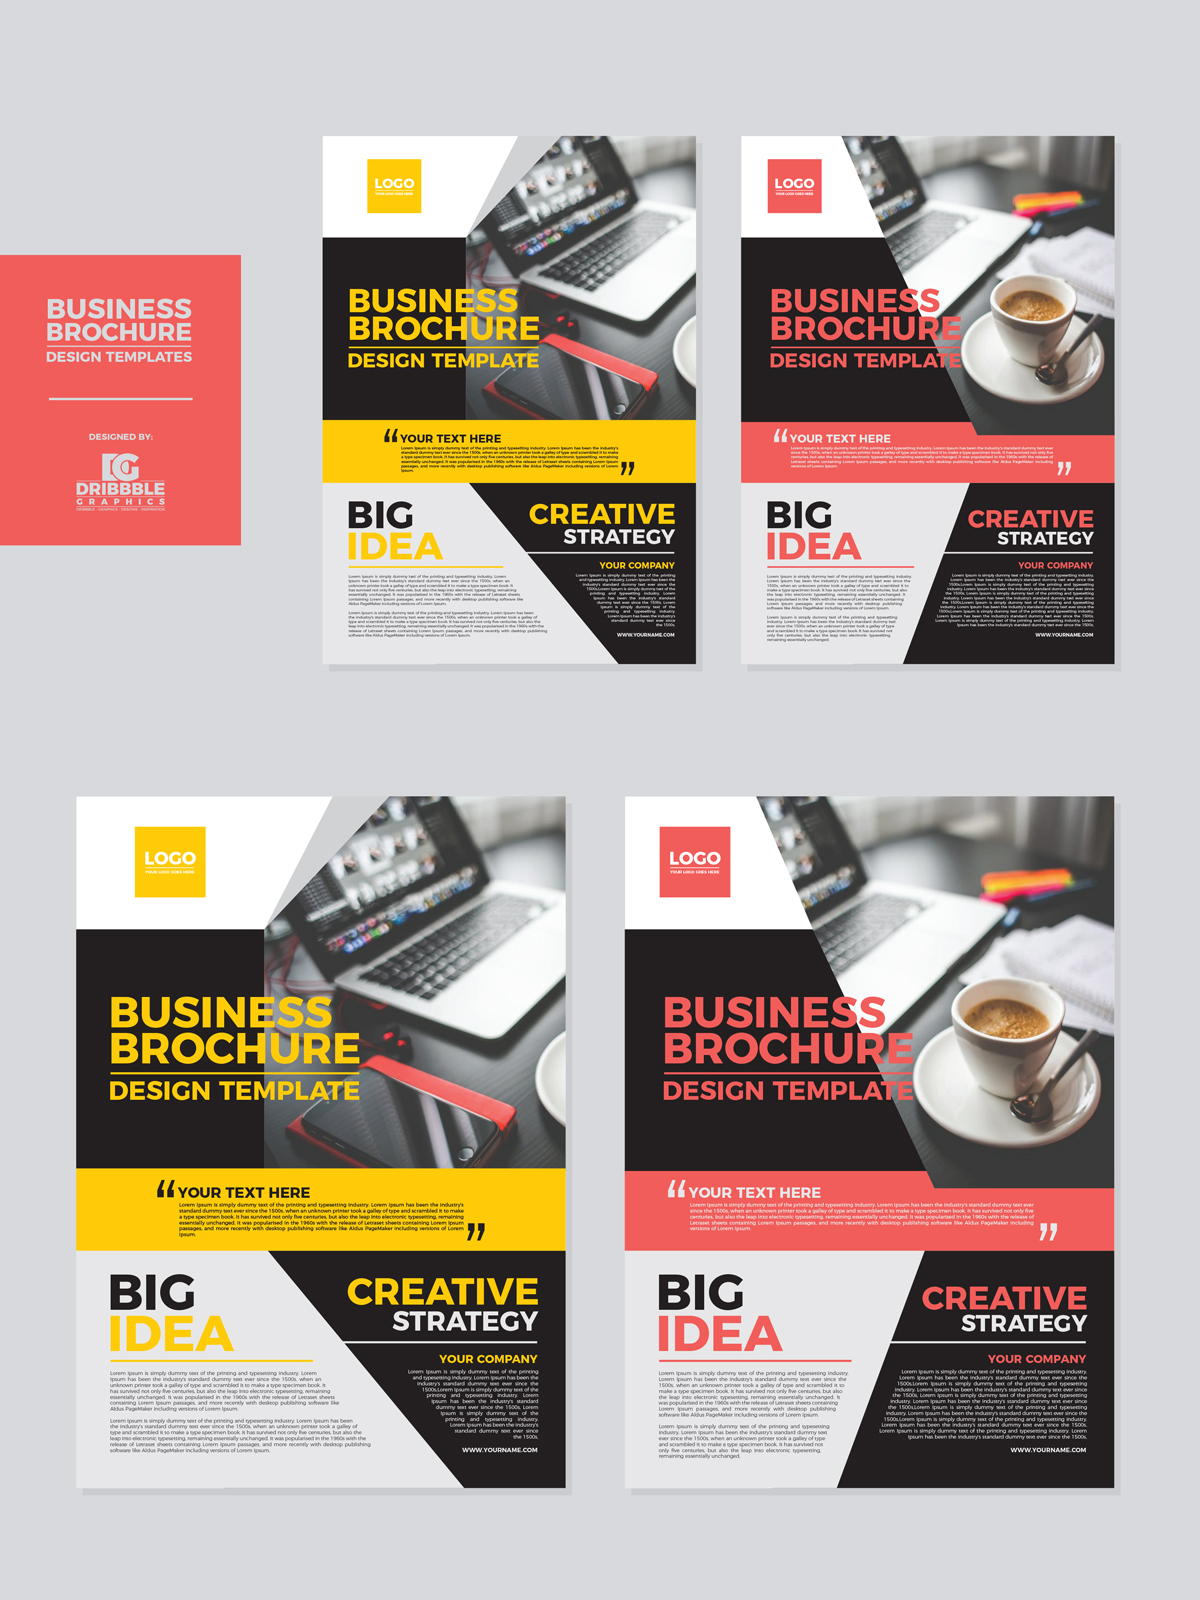 Free business brochure design templates dribbble graphics for Free business brochures templates